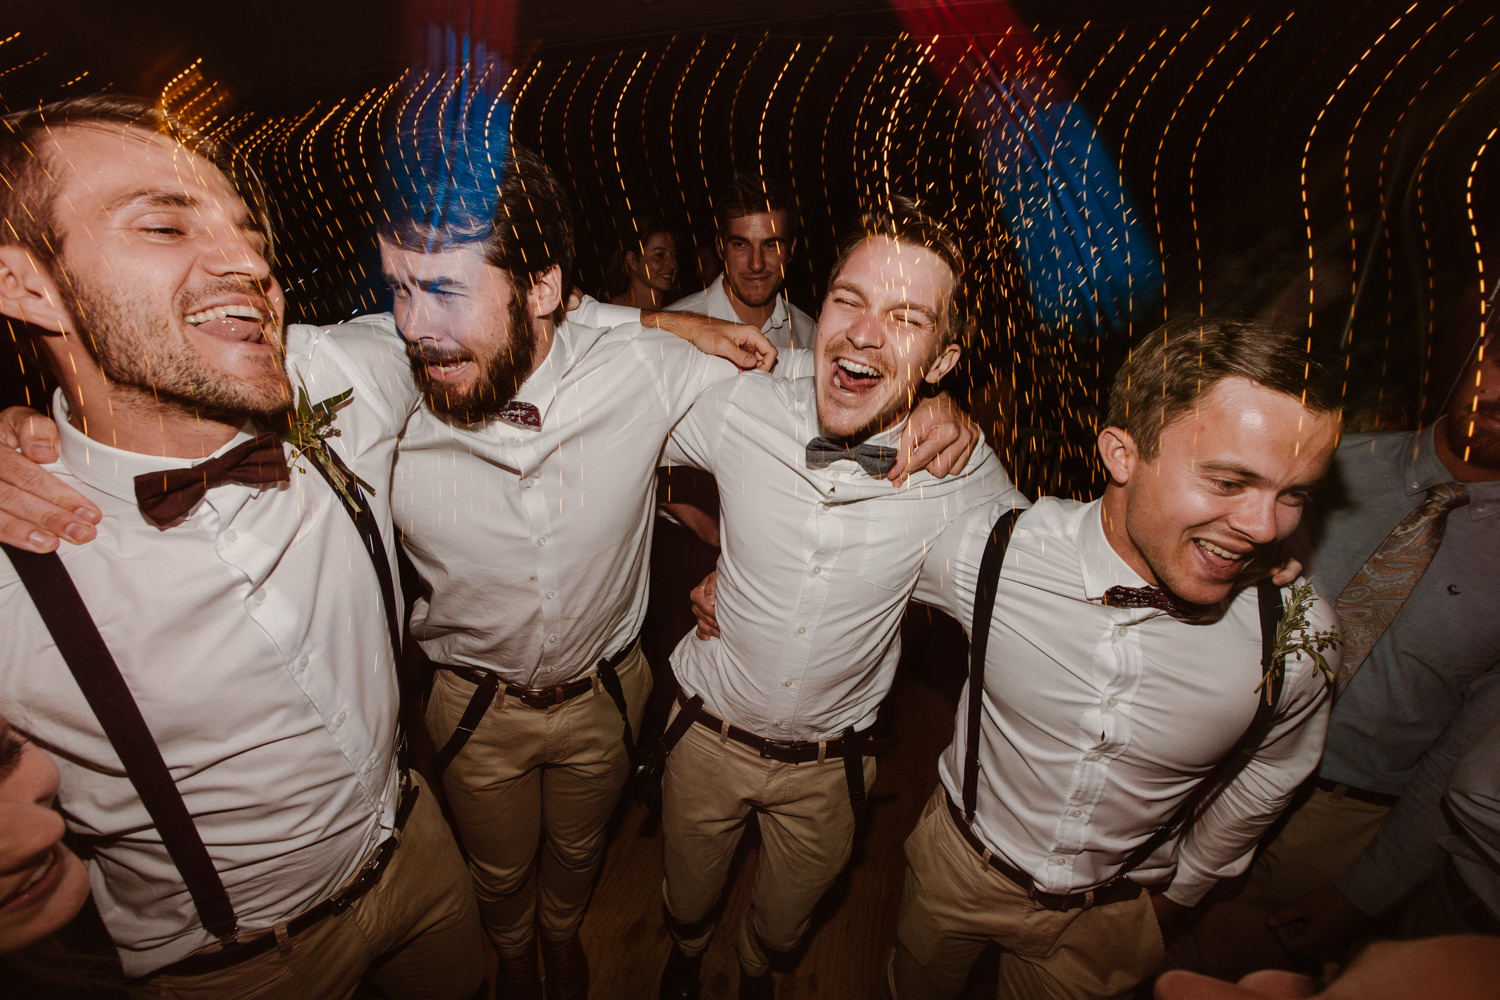 Four groomsmen jumping up and down with lights flashing at a wedding.